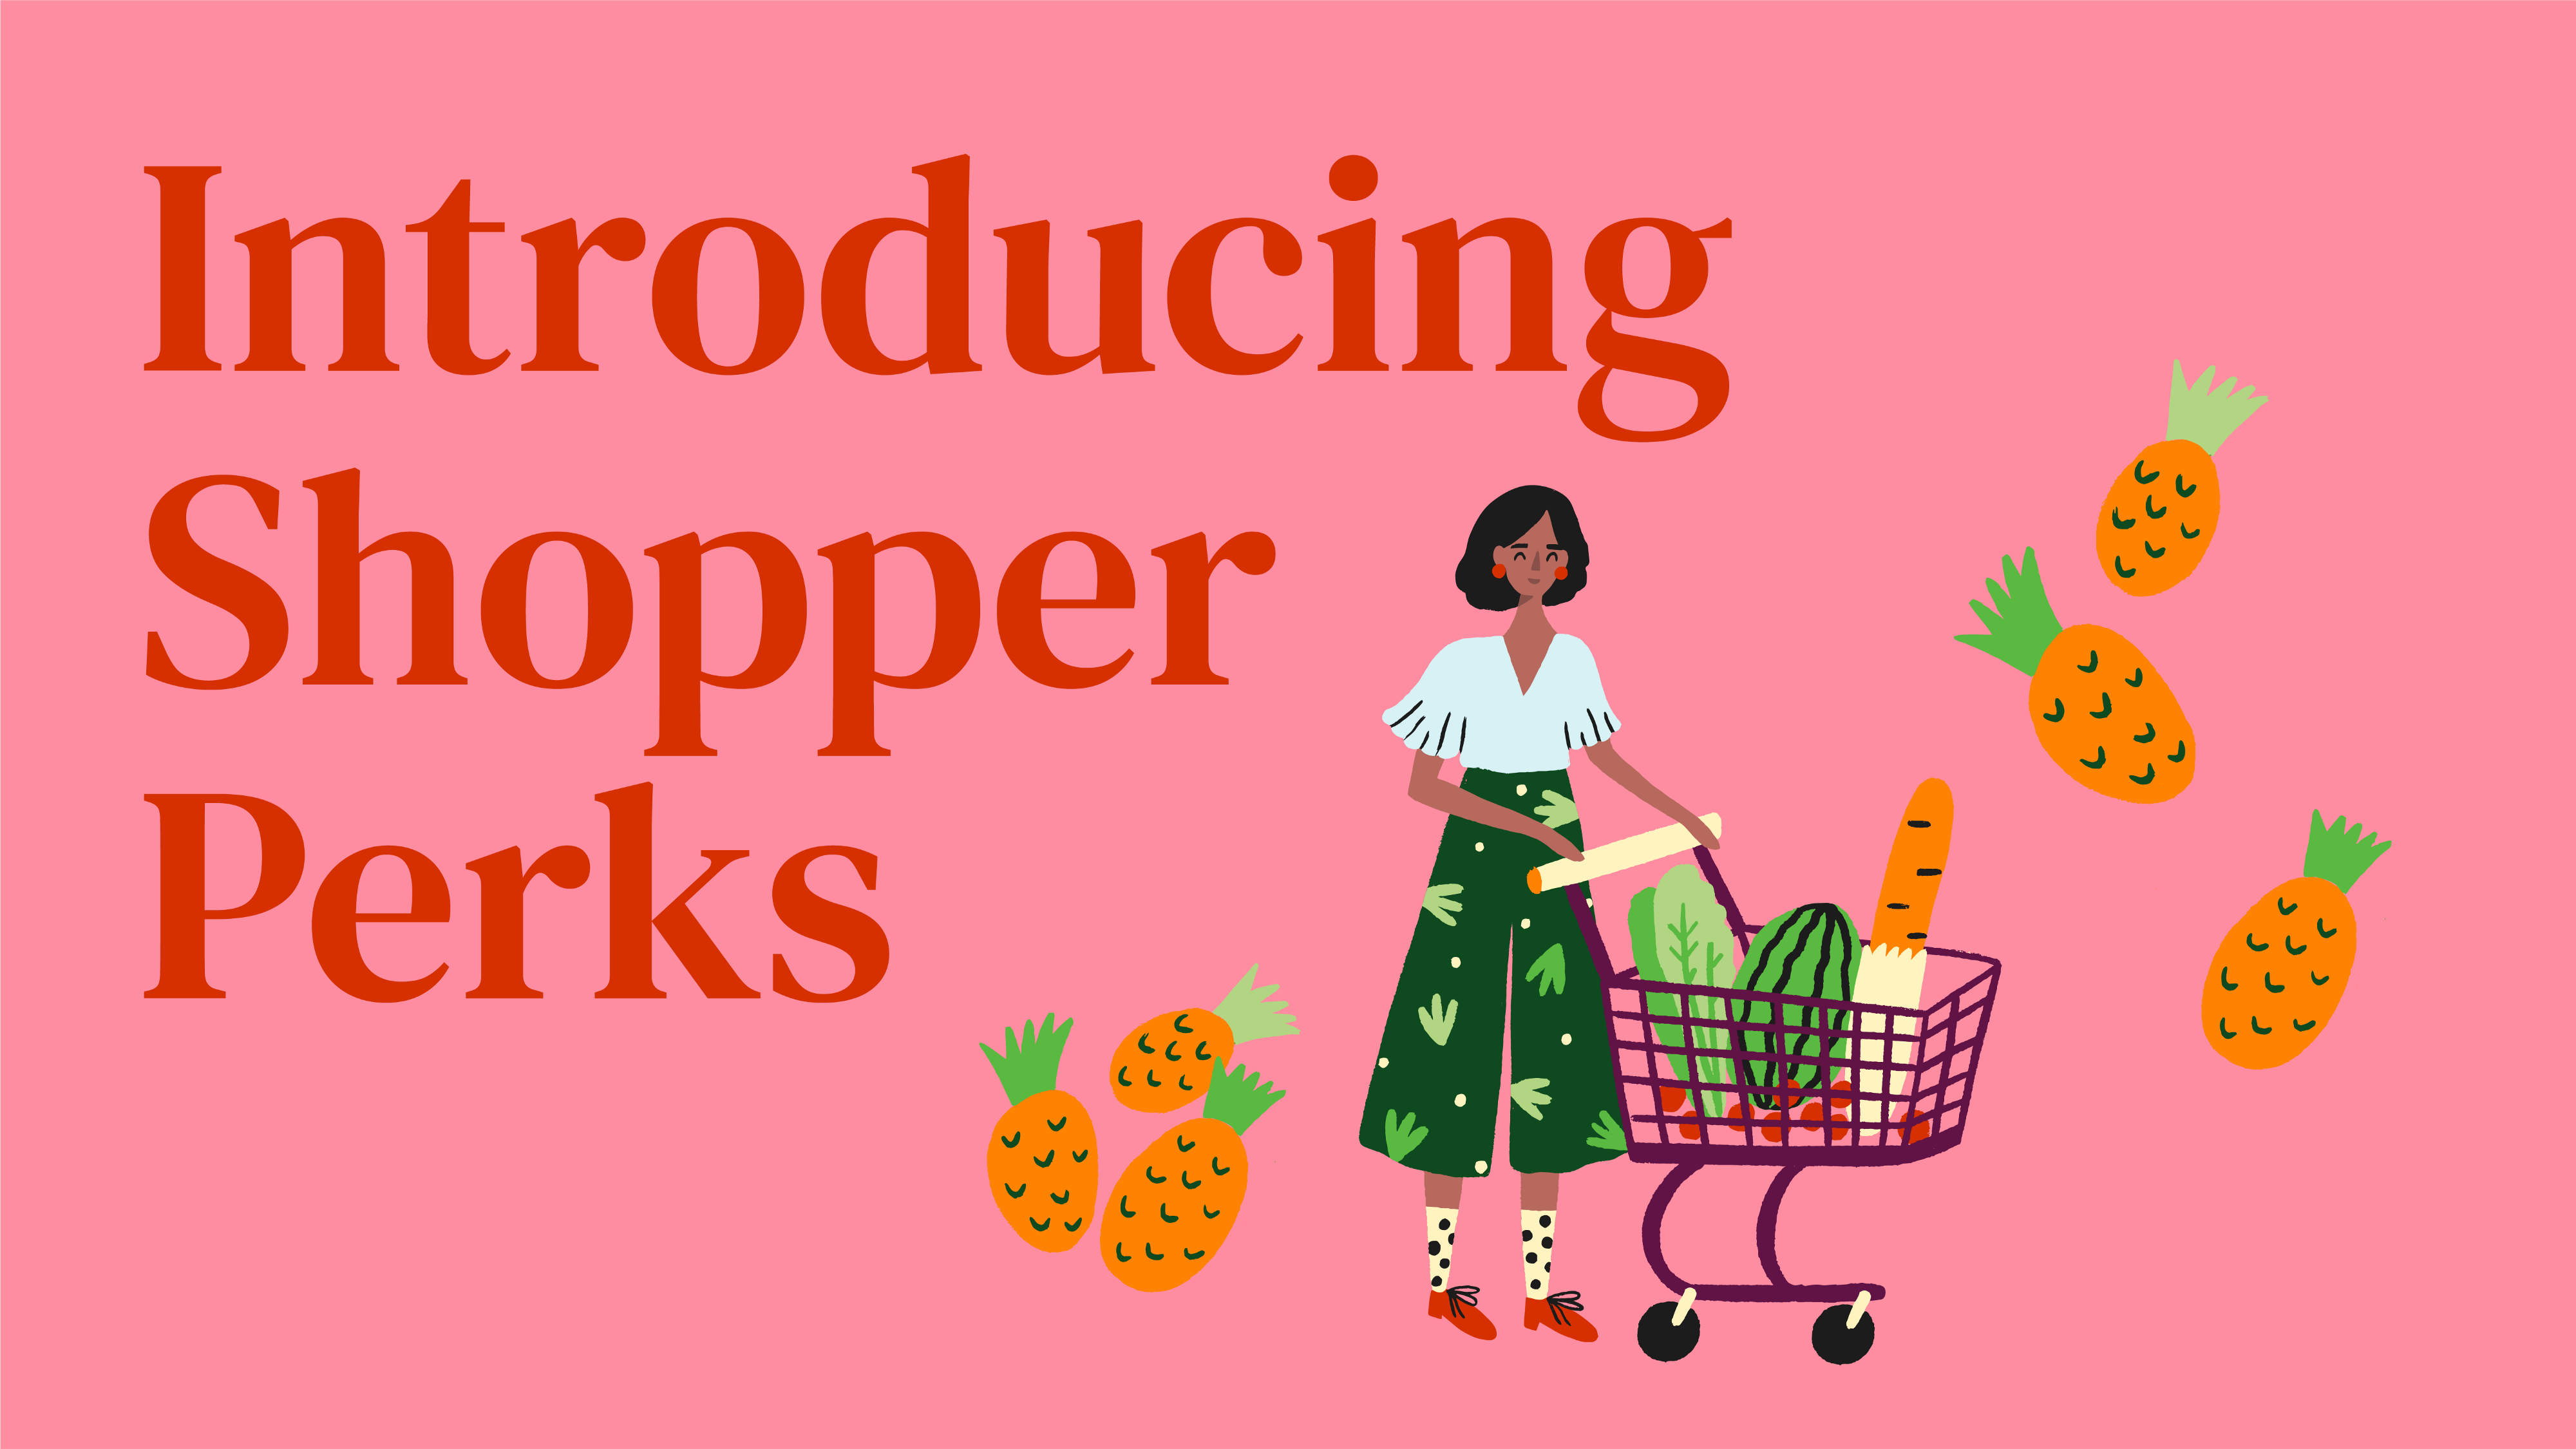 Introducing New Shopper Perks For A More Holistic Shopper